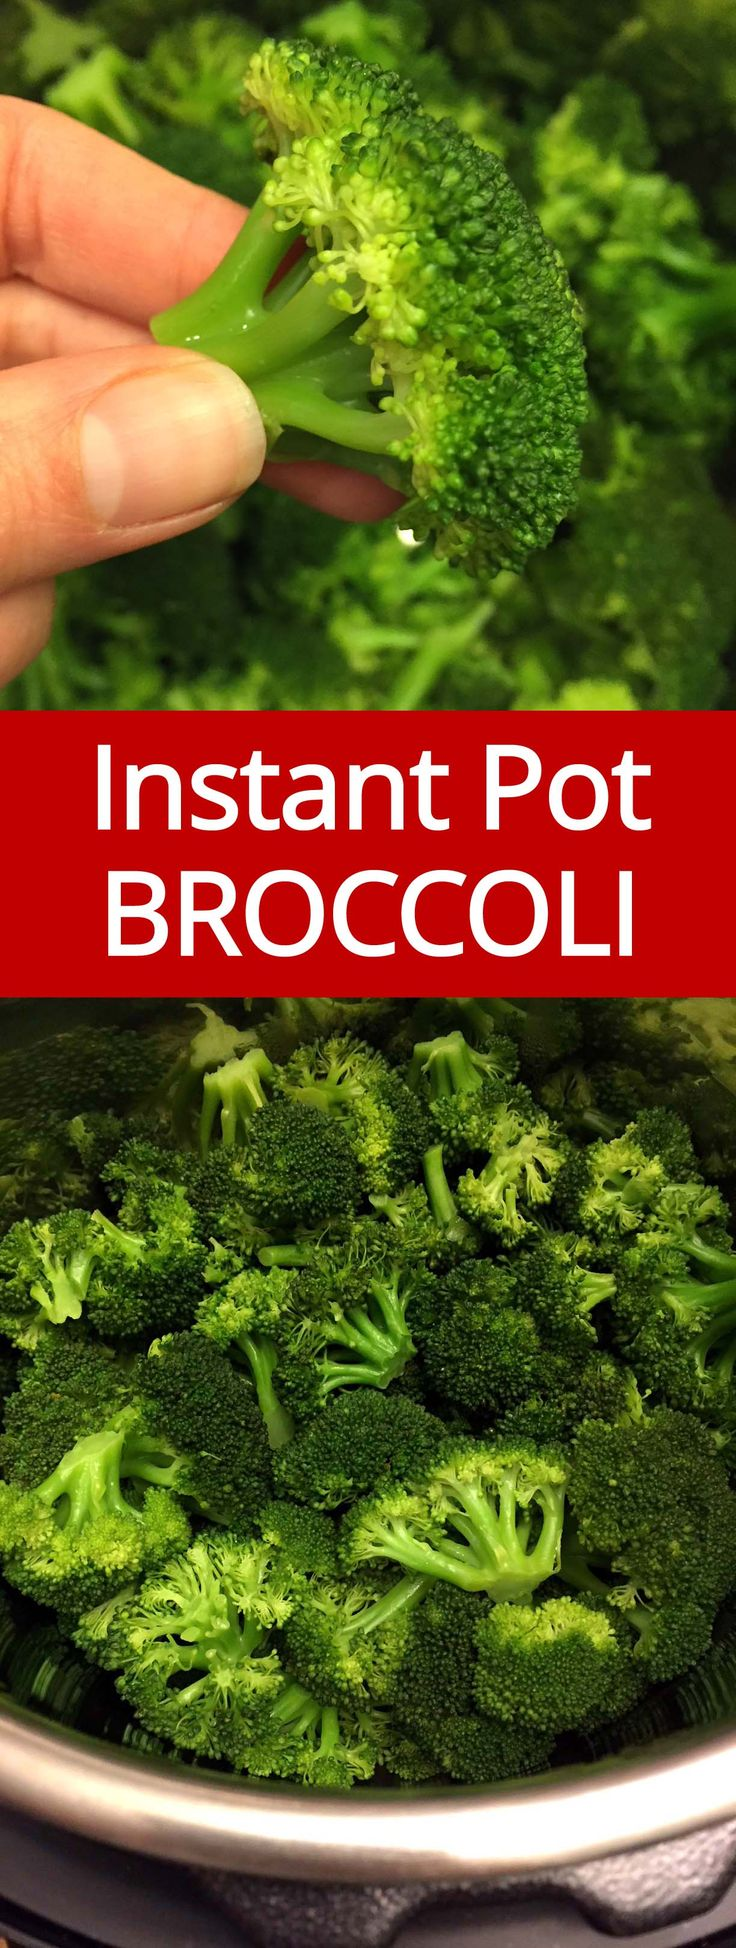 Instant Pot makes steamed broccoli in 2 minutes! I love Instant Pot Broccoli, so crispy, healthy and yummy!